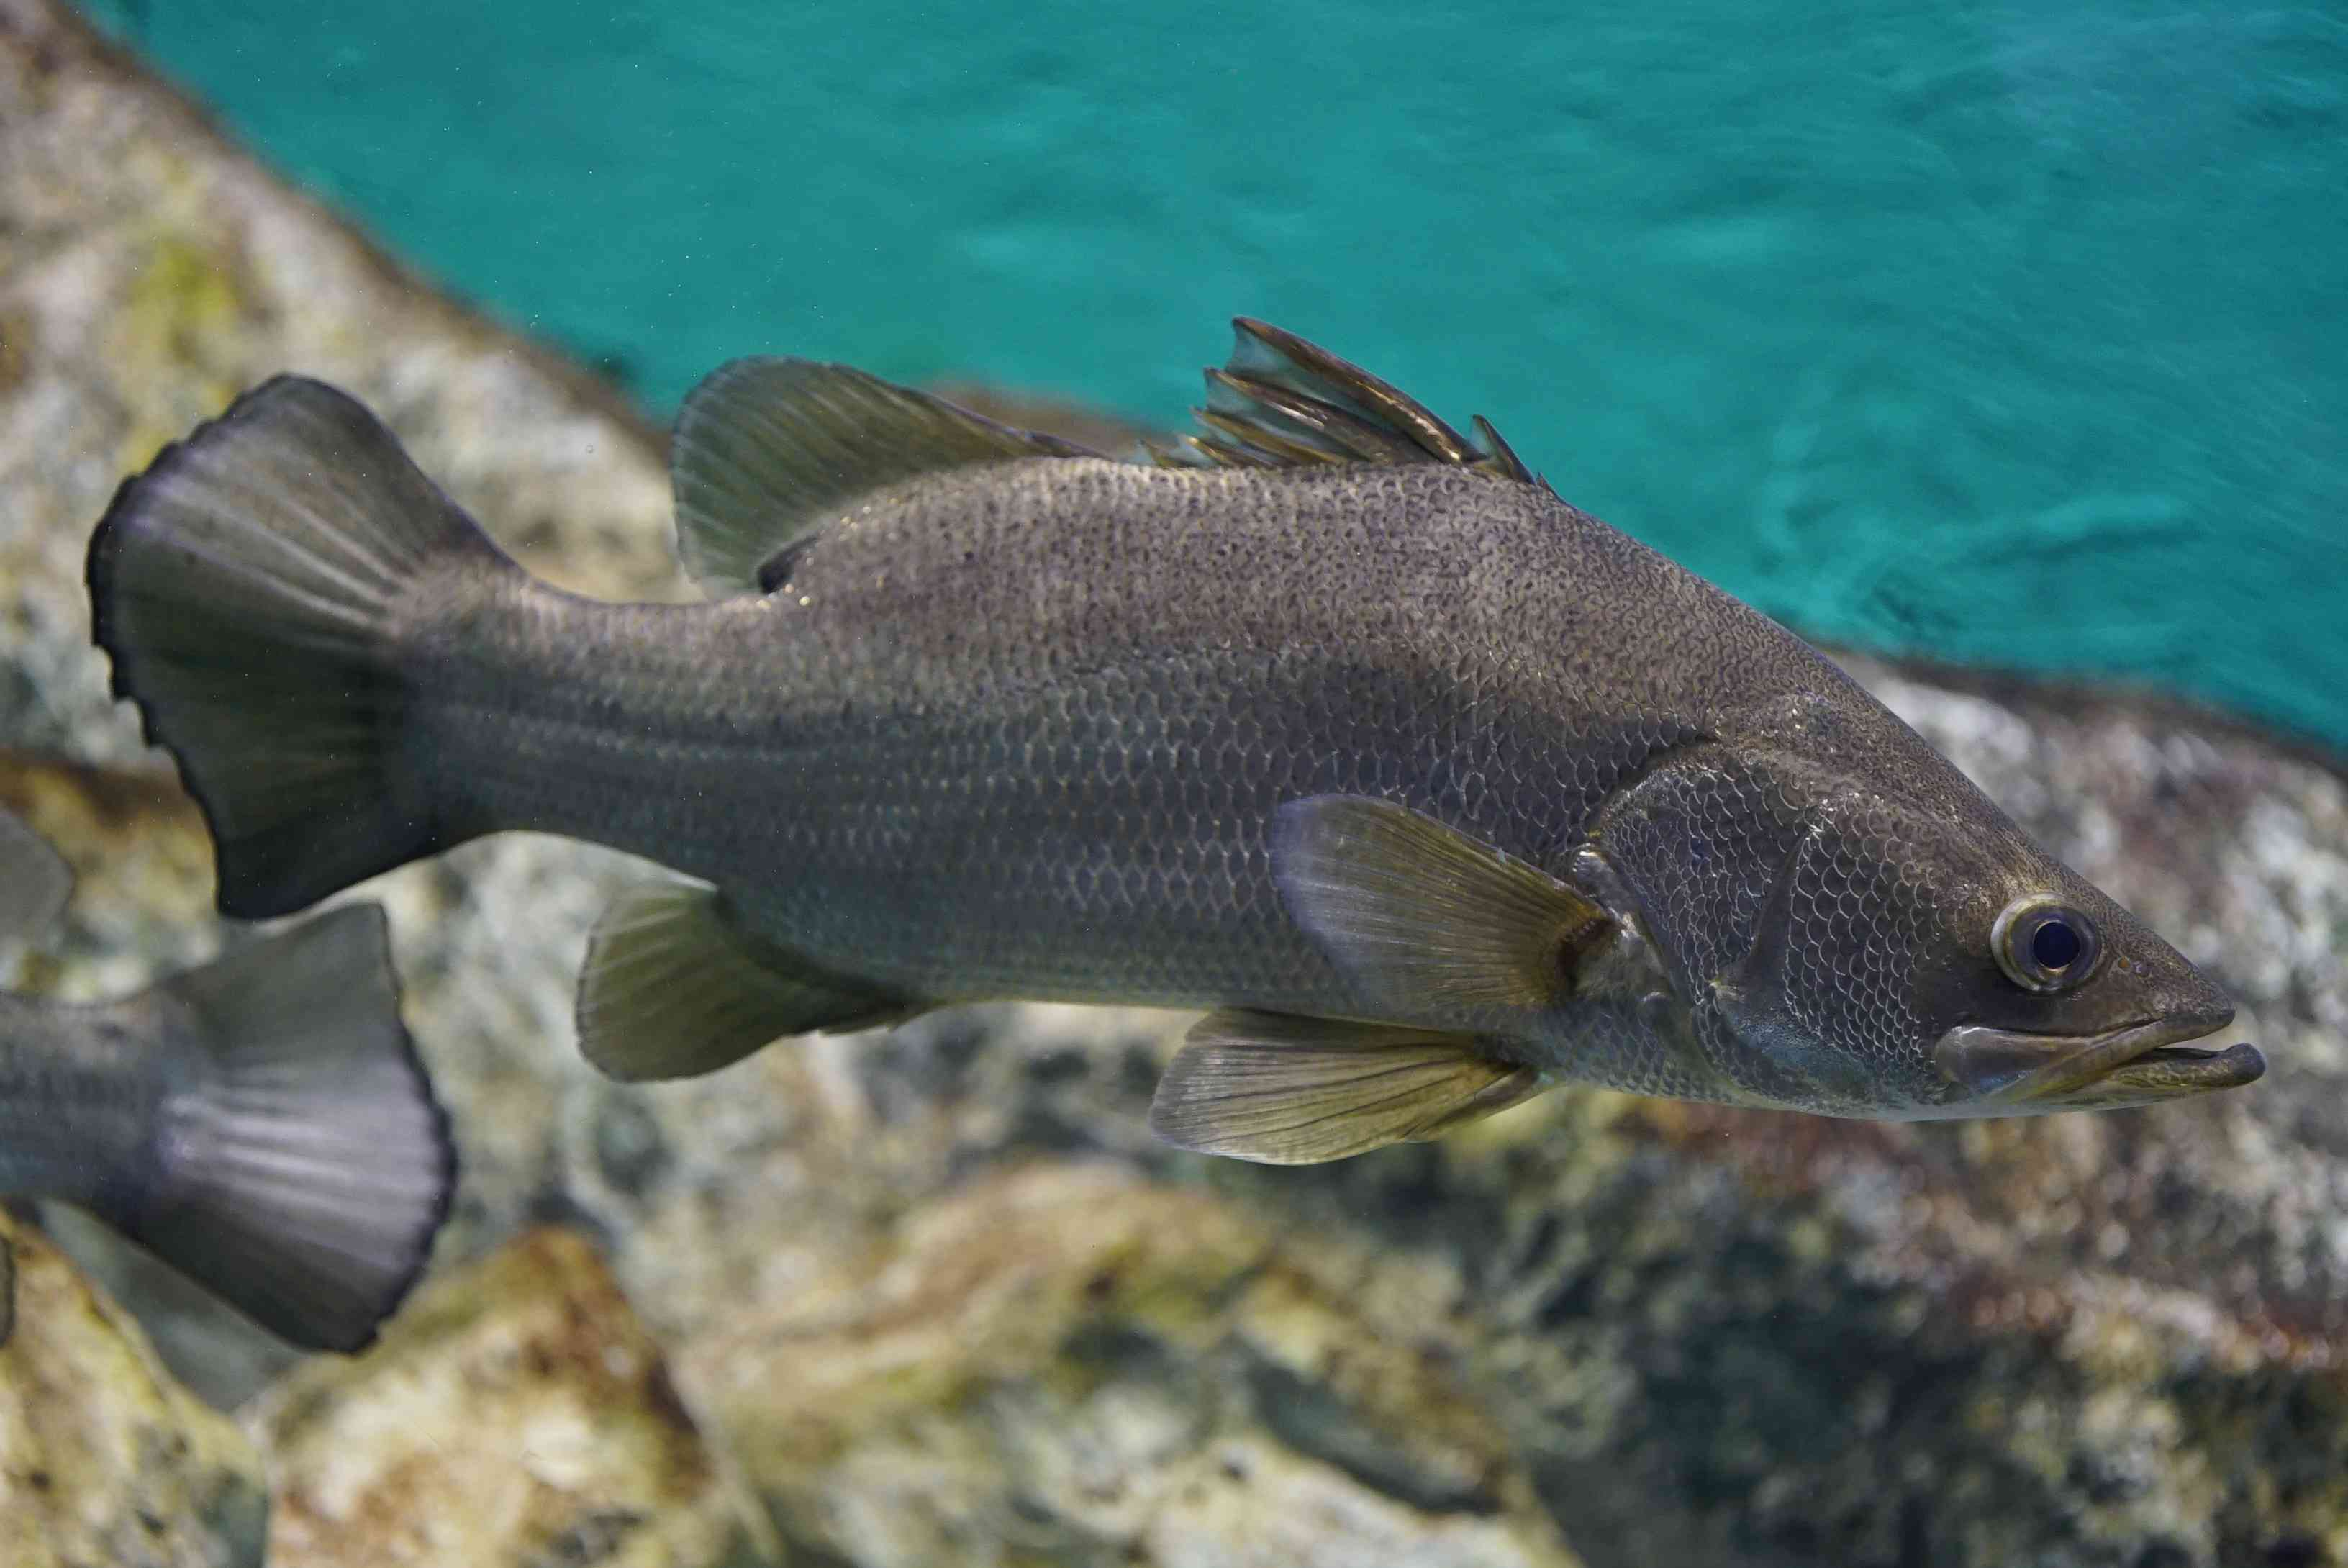 Side view of a Nile perch swimming in water with rocks below